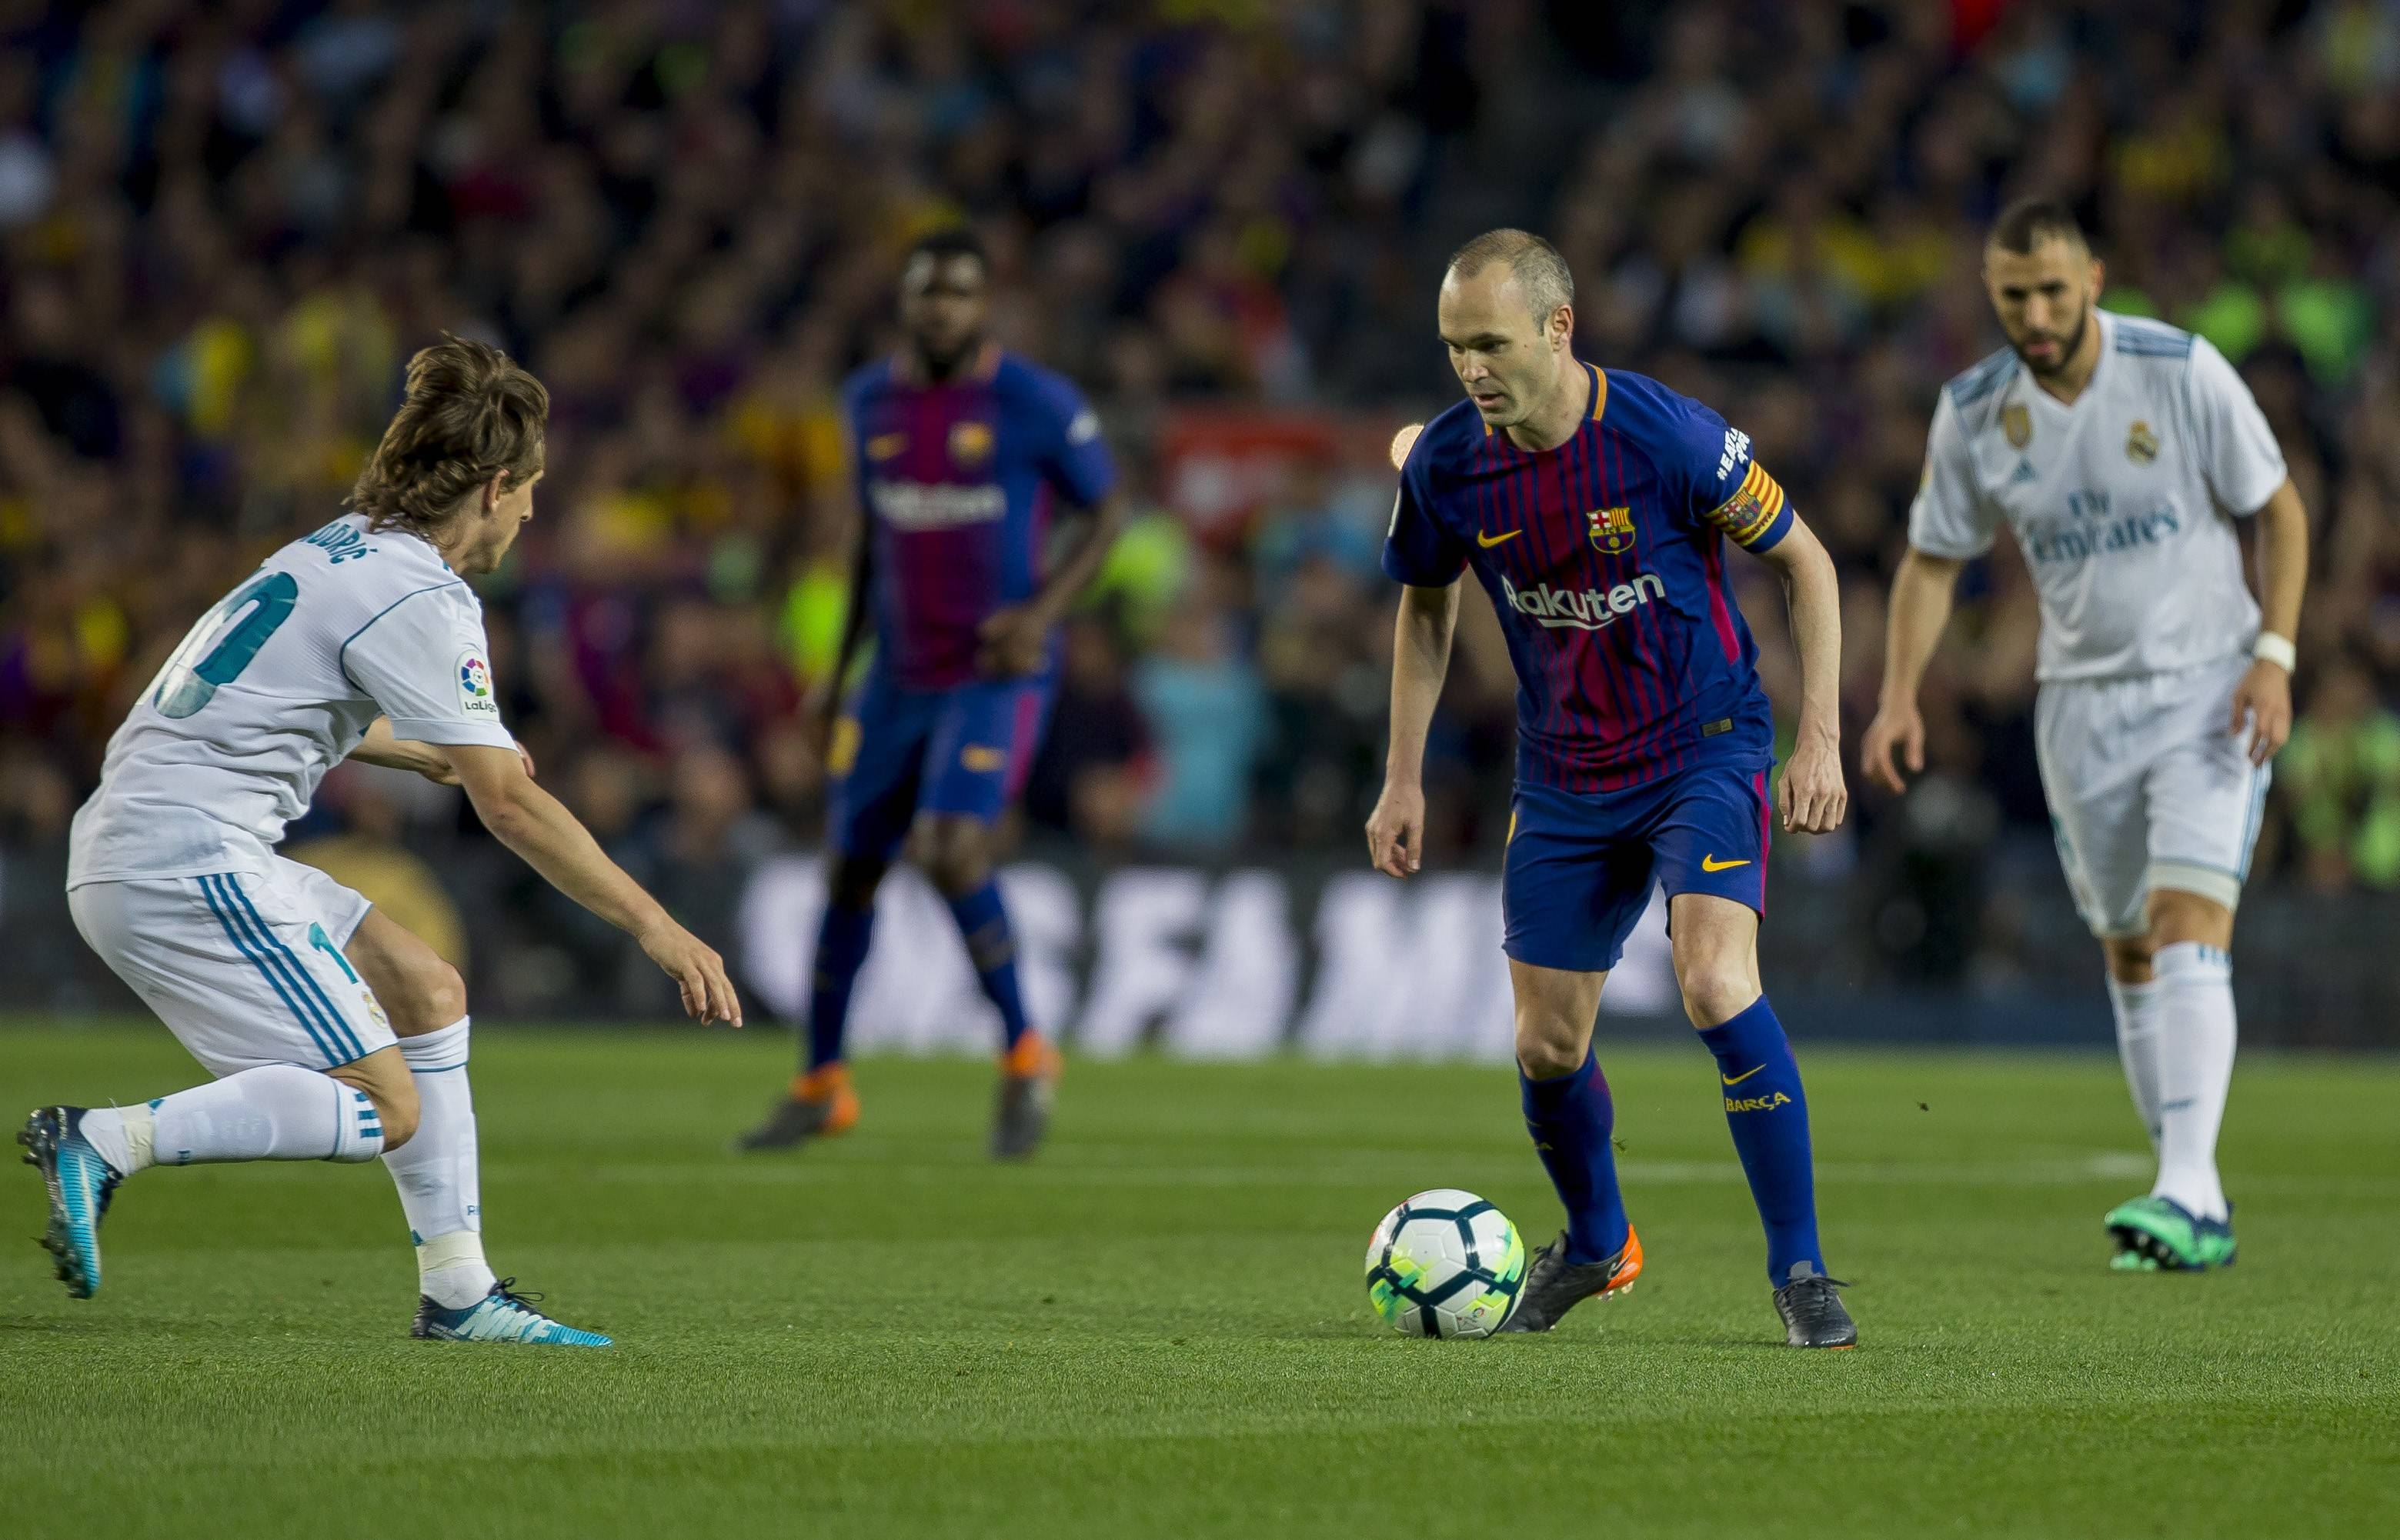 Spanish media: Vissel Kobe to sign Andres Iniesta